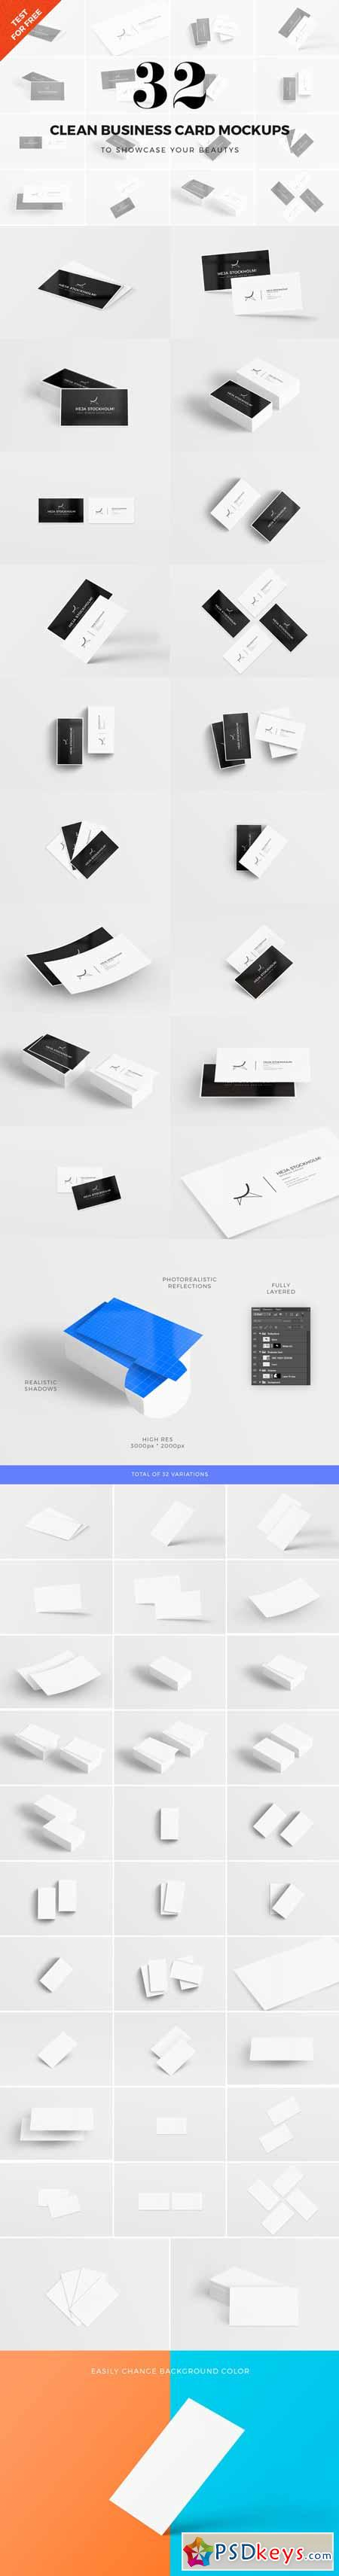 32 Clean Business Card Mockups 339621